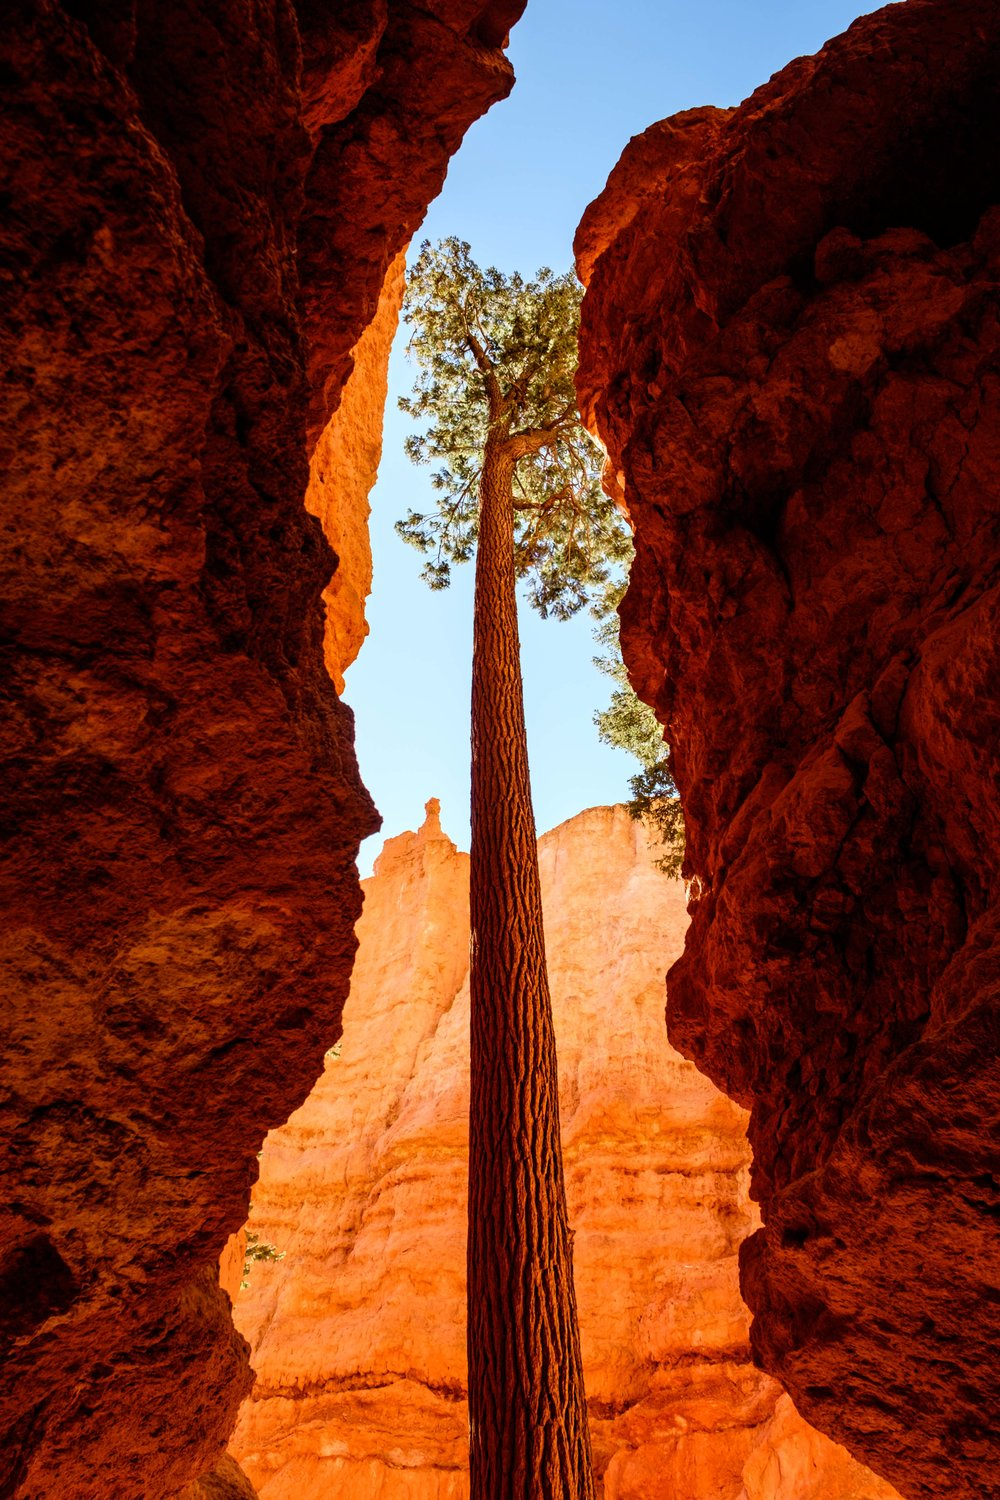 A centuries old fir tree rising from inside of the hoodoos in search of sunlight.